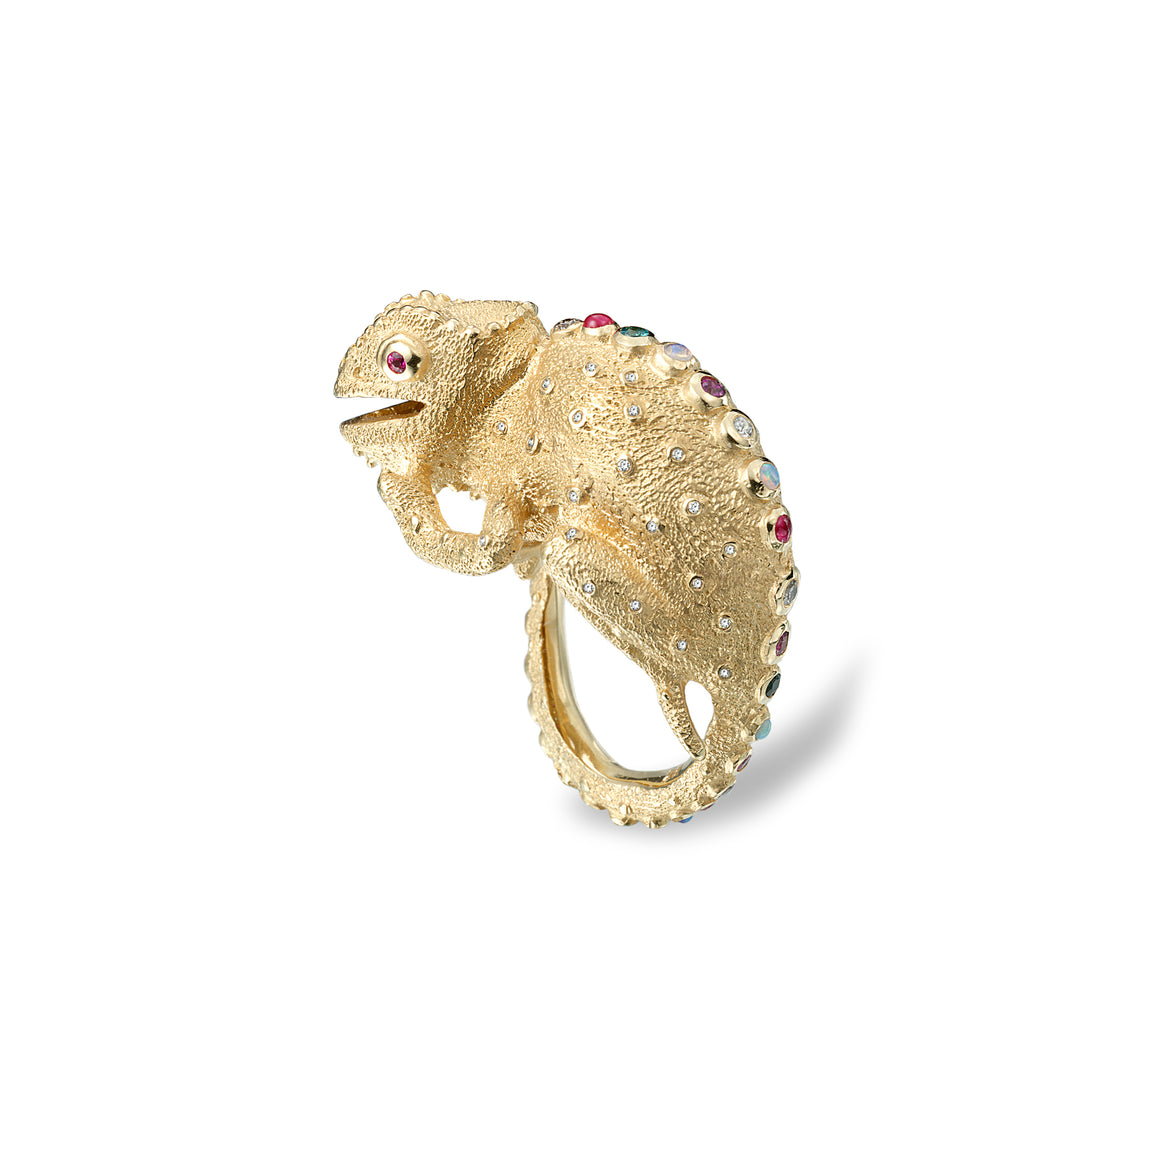 Chameleon Ring by Manya & Roumen - Talisman Collection Fine Jewelers